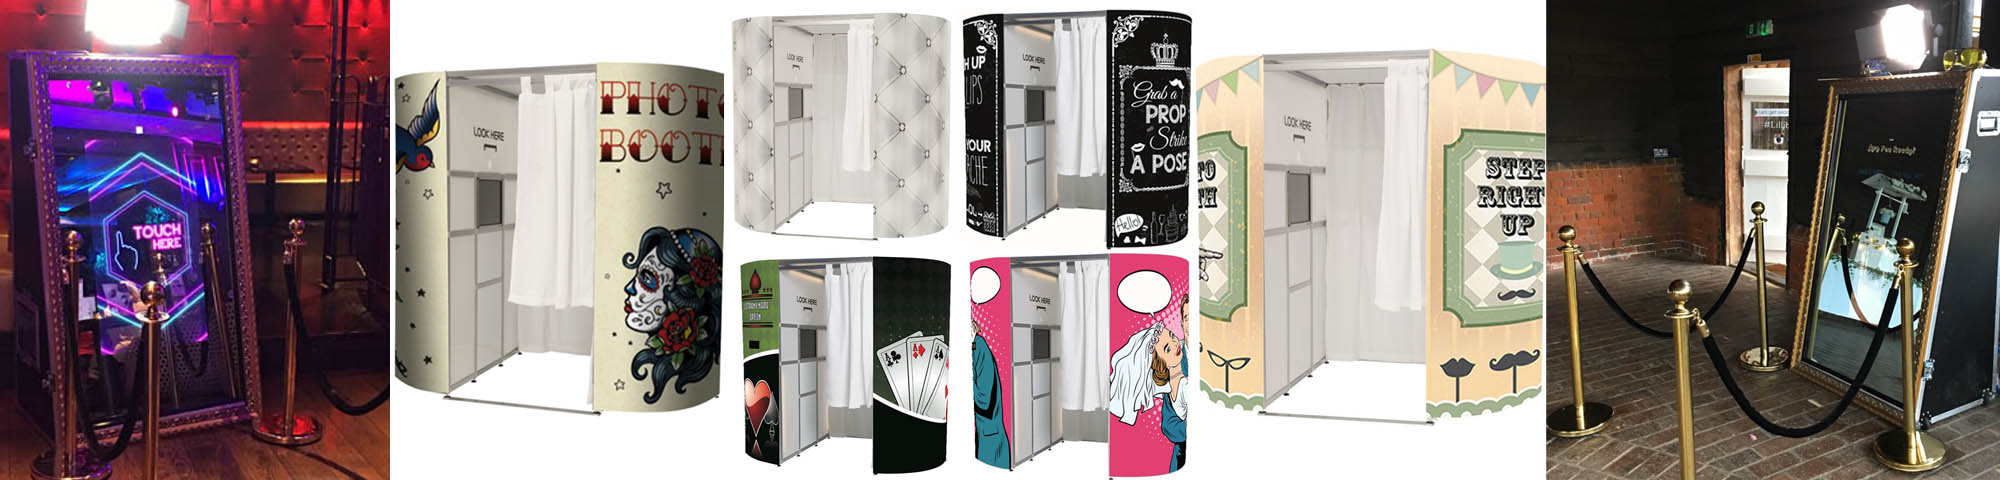 Photo booth rental in Battersea - some of our great photo booths in venues